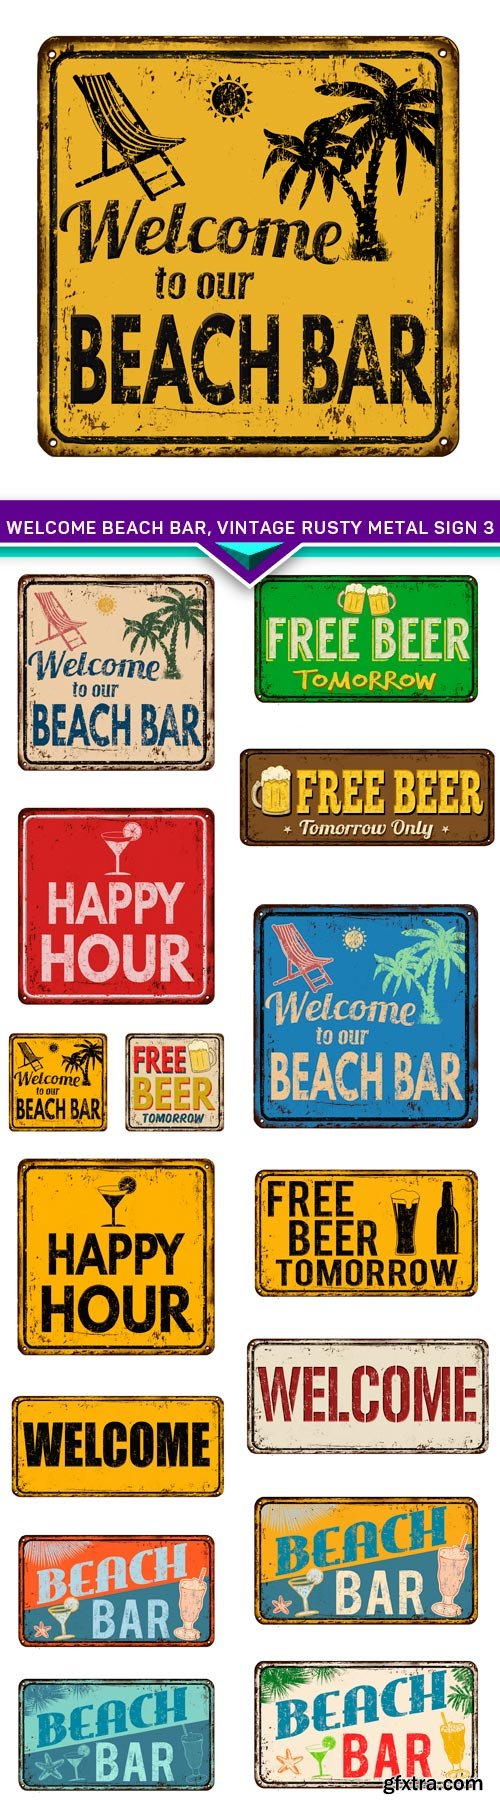 Welcome Beach bar, vintage rusty metal sign 3 15x EPS